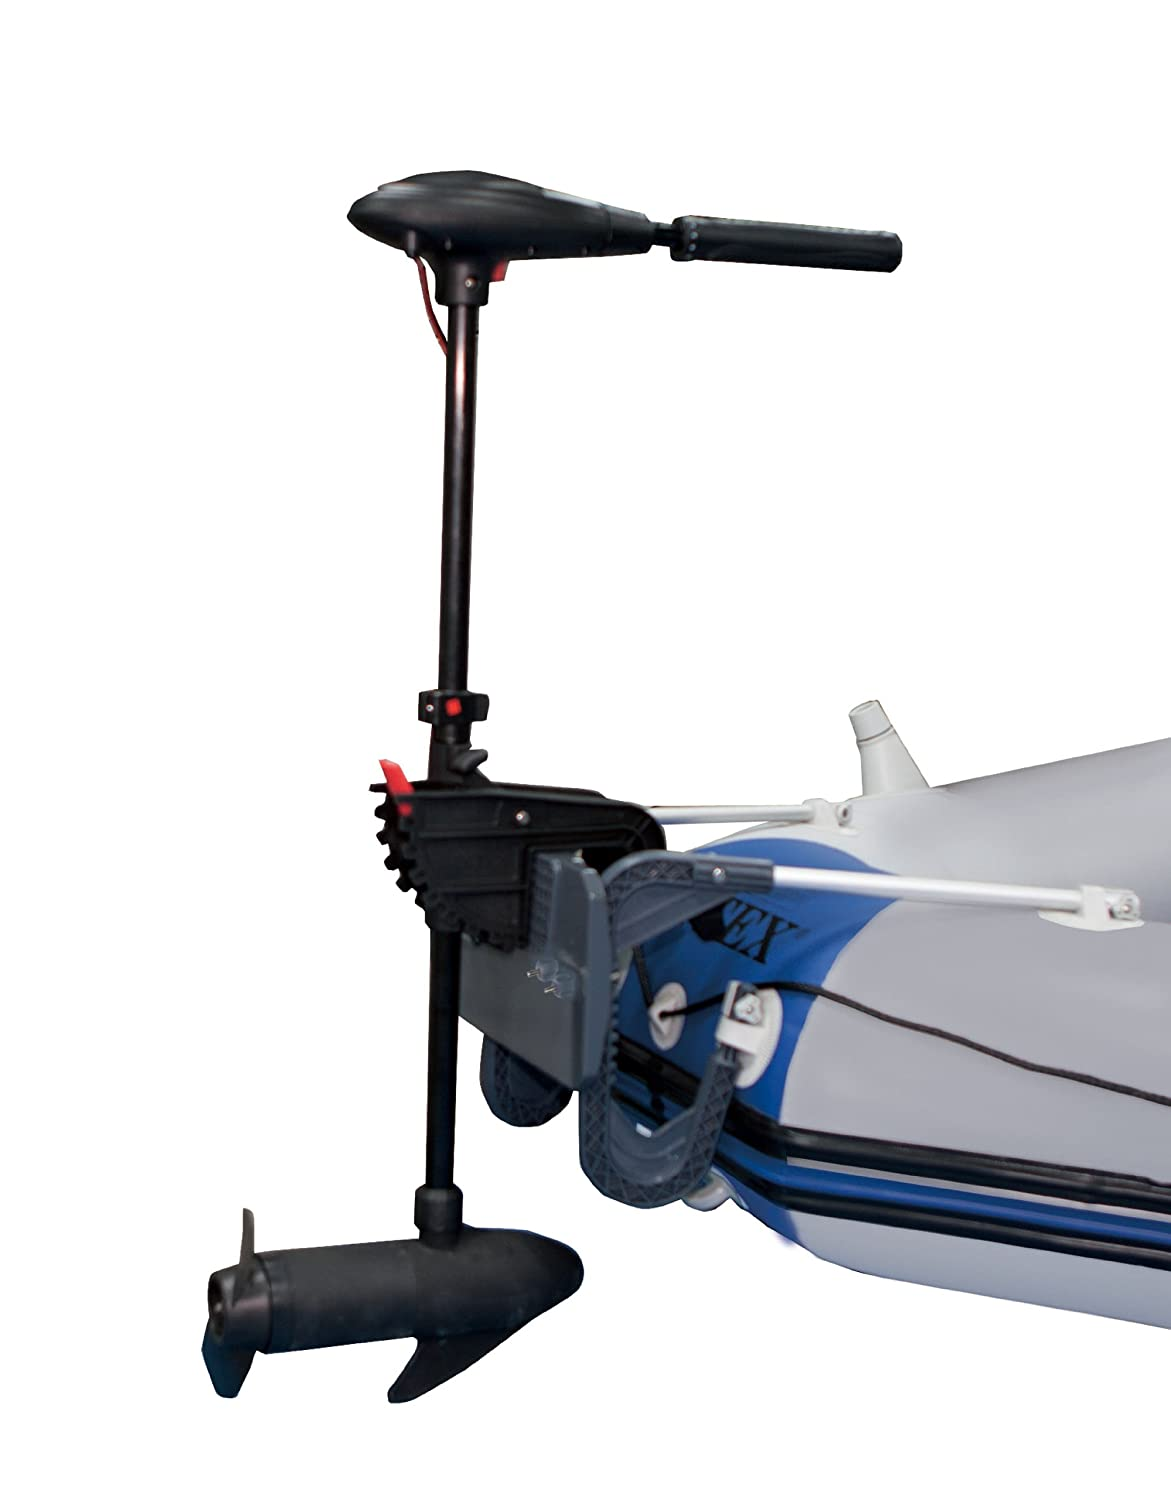 Intex Transom Mount Trolling Boat Motor at Sears.com